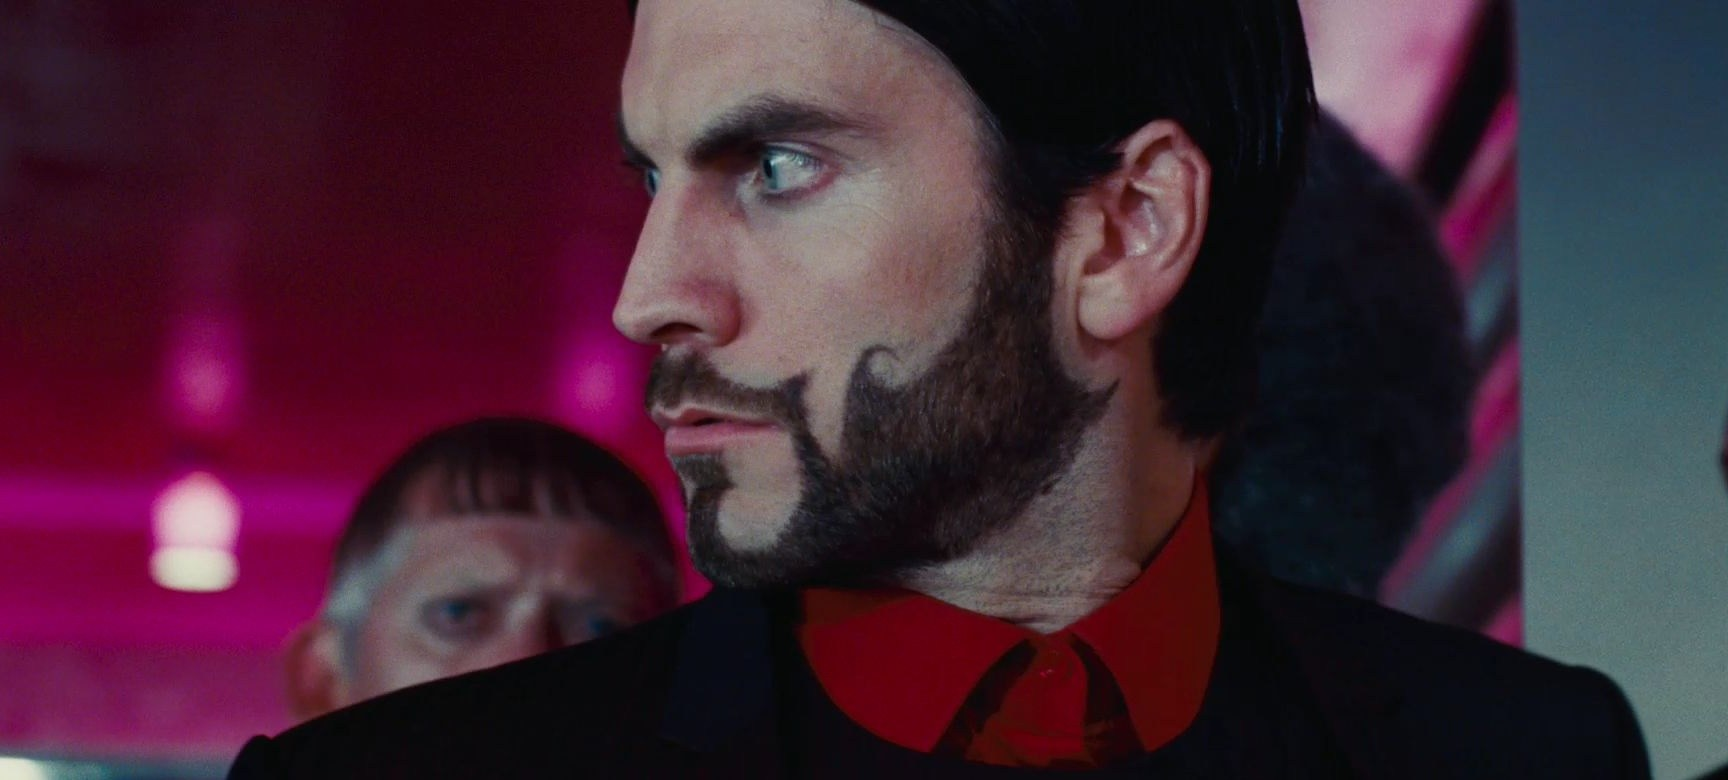 Seneca Crane from Hunger Games